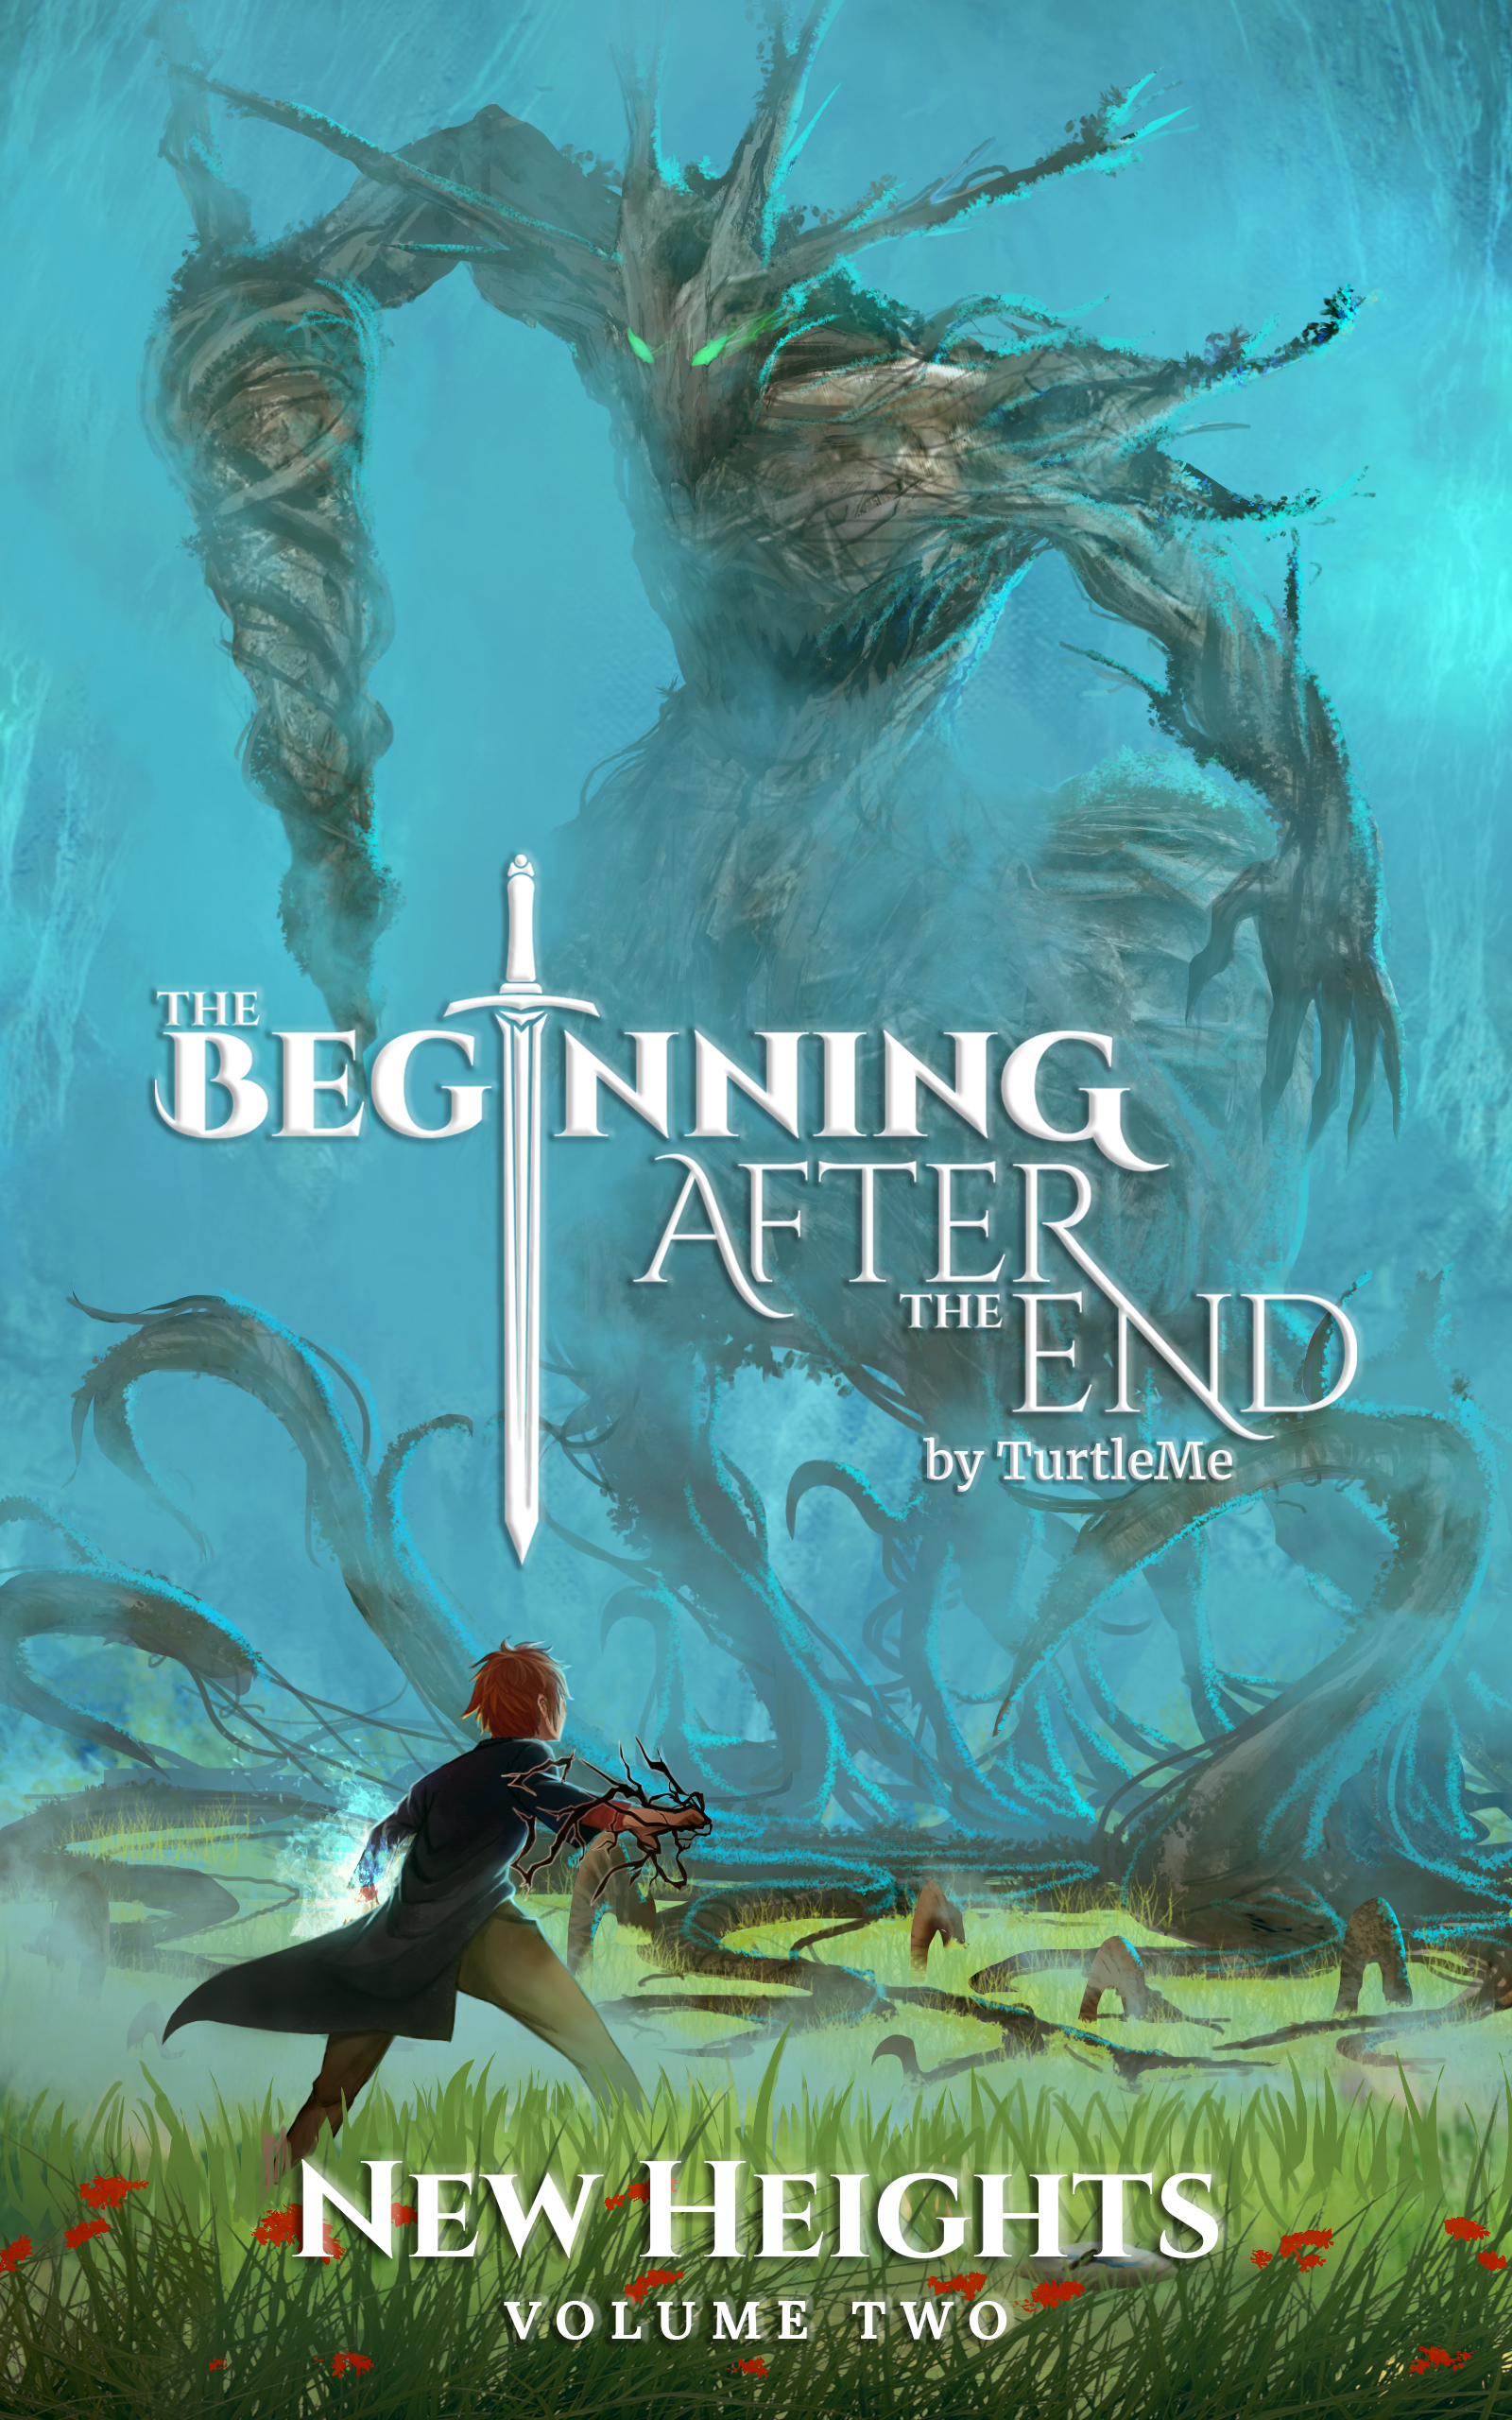 Volumes And Chapters The Beginning After The End Wiki Fandom Log in | lost your password? the beginning after the end wiki